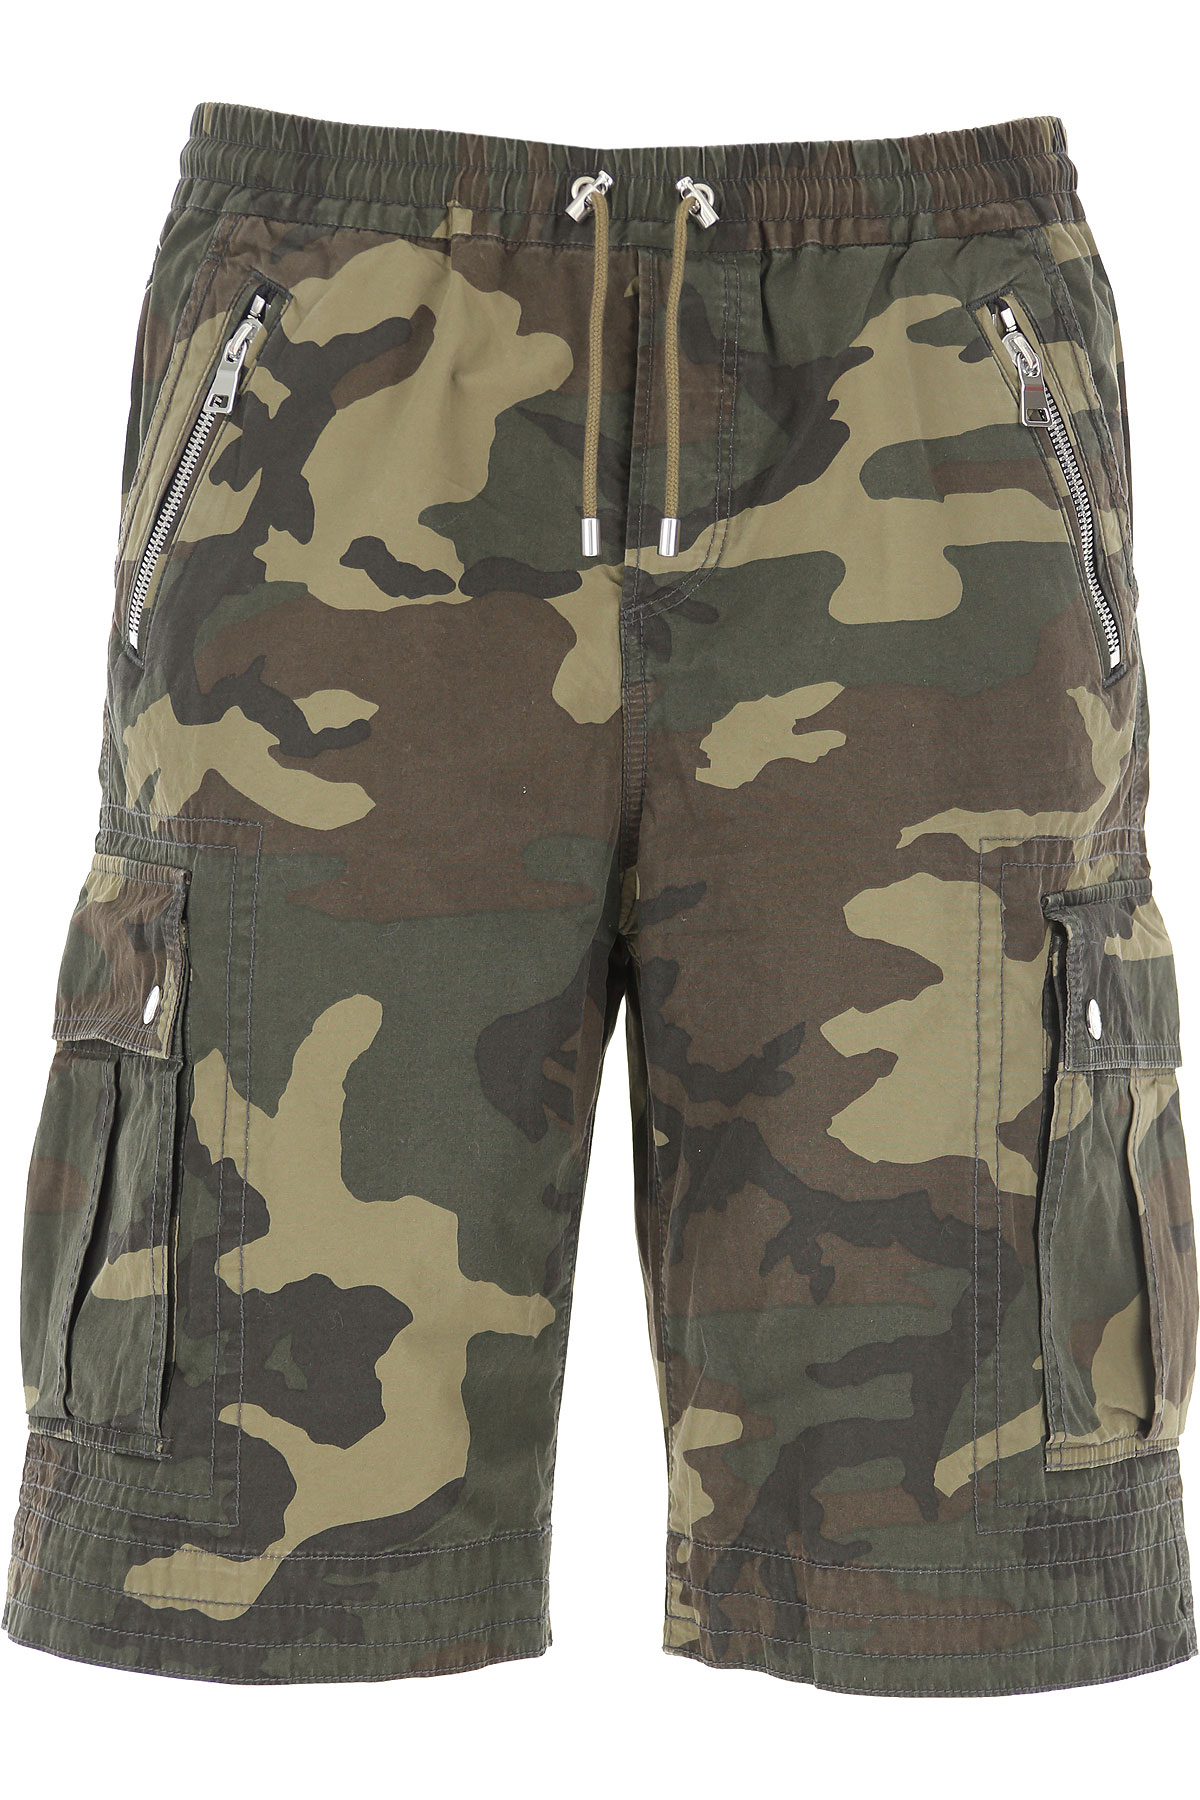 Balmain Shorts for Men On Sale, camouflage, Cotton, 2019, 32 34